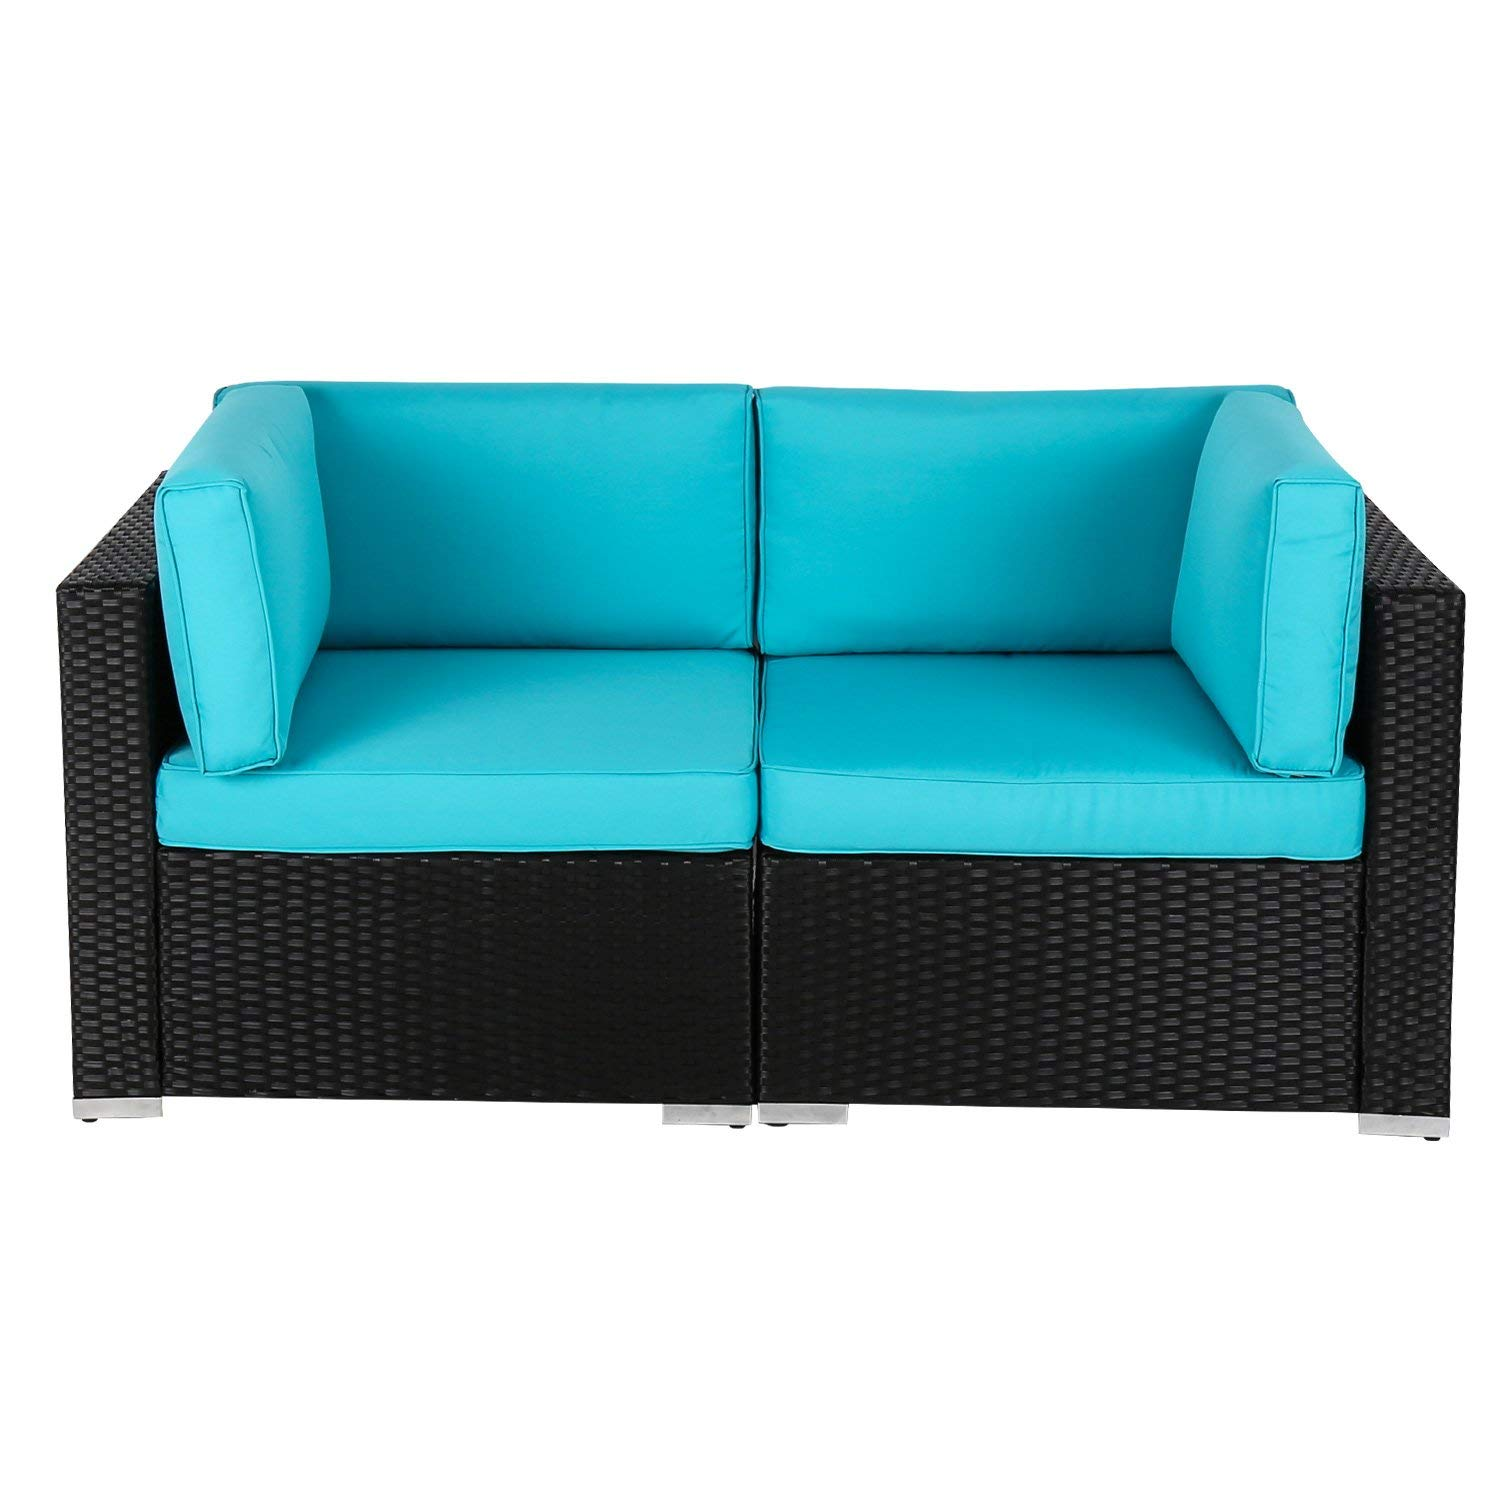 Cheap Outdoor Cushions Sofa Find Outdoor Cushions Sofa Deals On